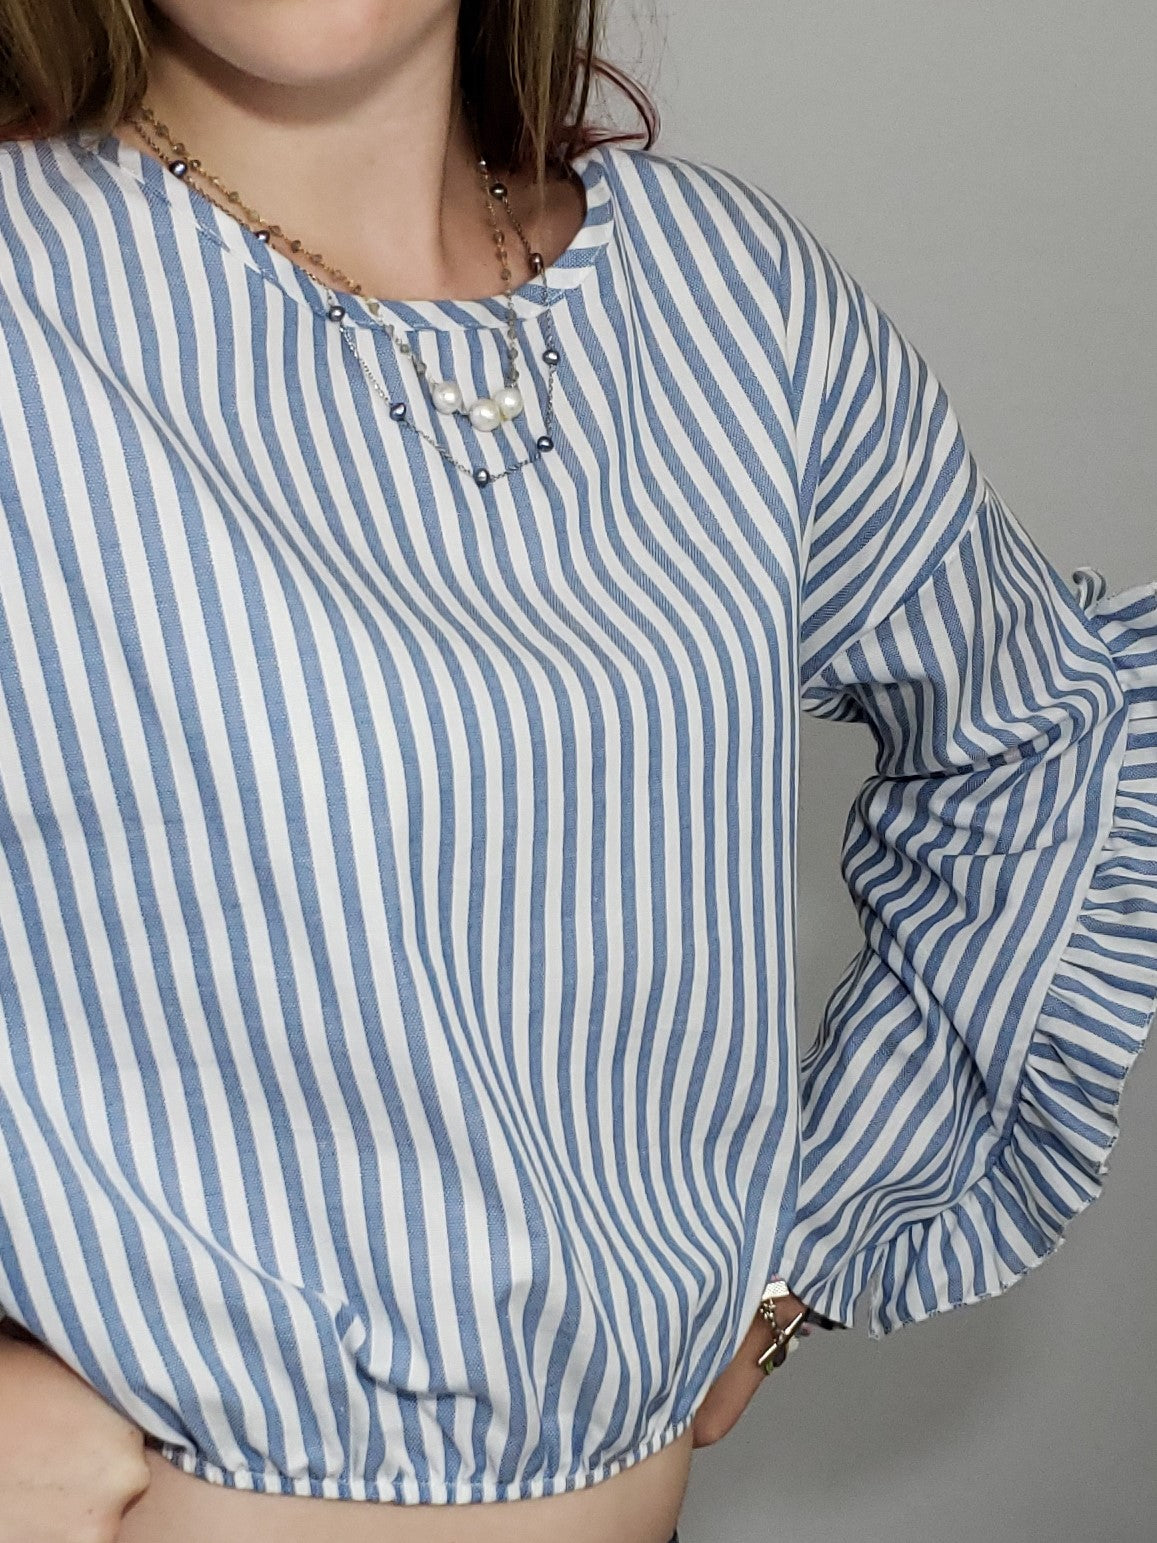 She's Got Flair Cut-Out Ruffle Sleeves Blouse - Houzz of DVA Boutique